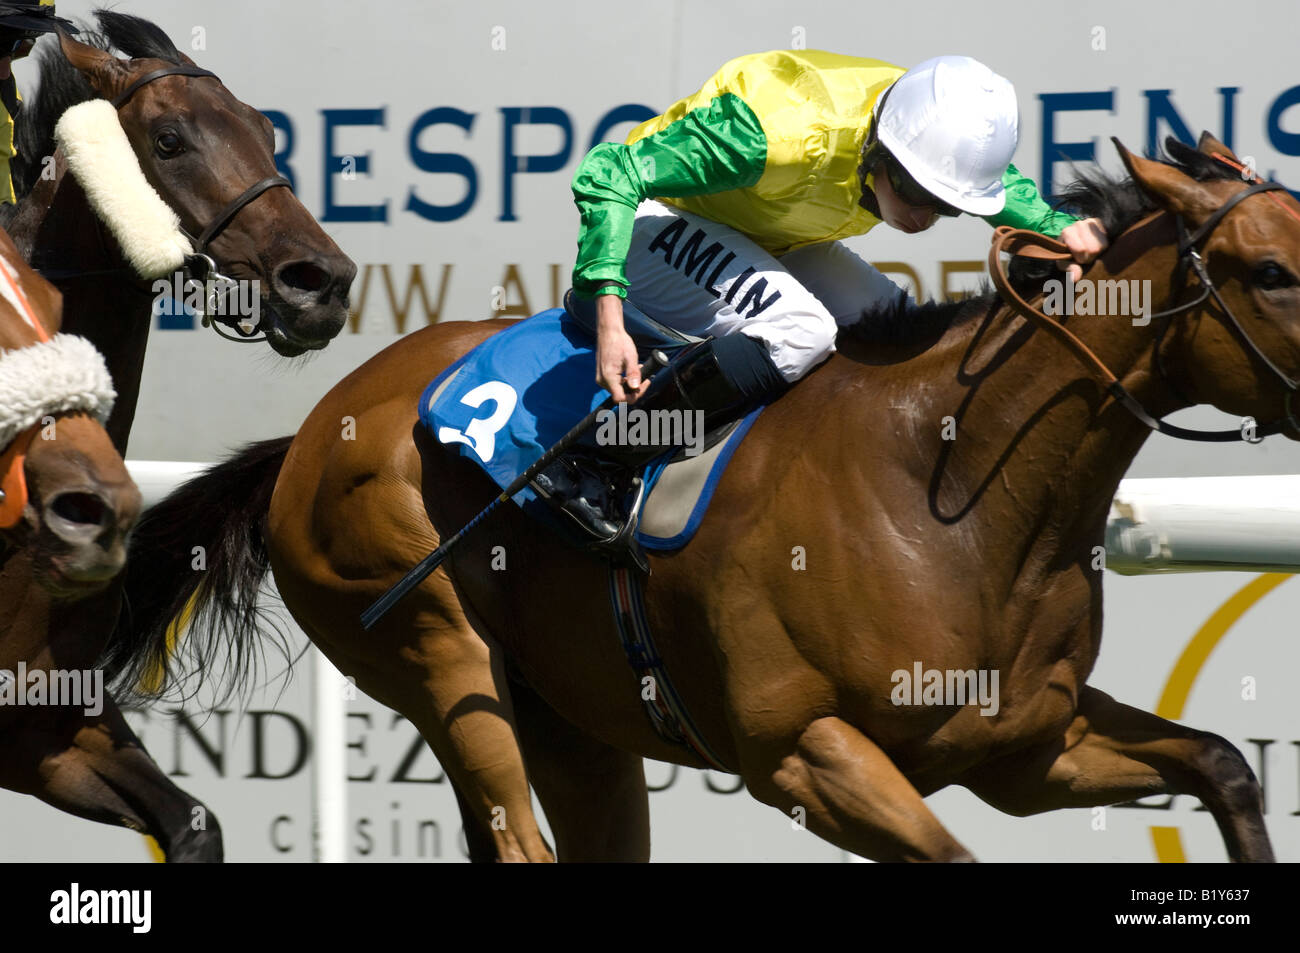 Champion jockey Ryan Moore riding Vigano wins from Benedetto in the second race at Brighton Races - Stock Image